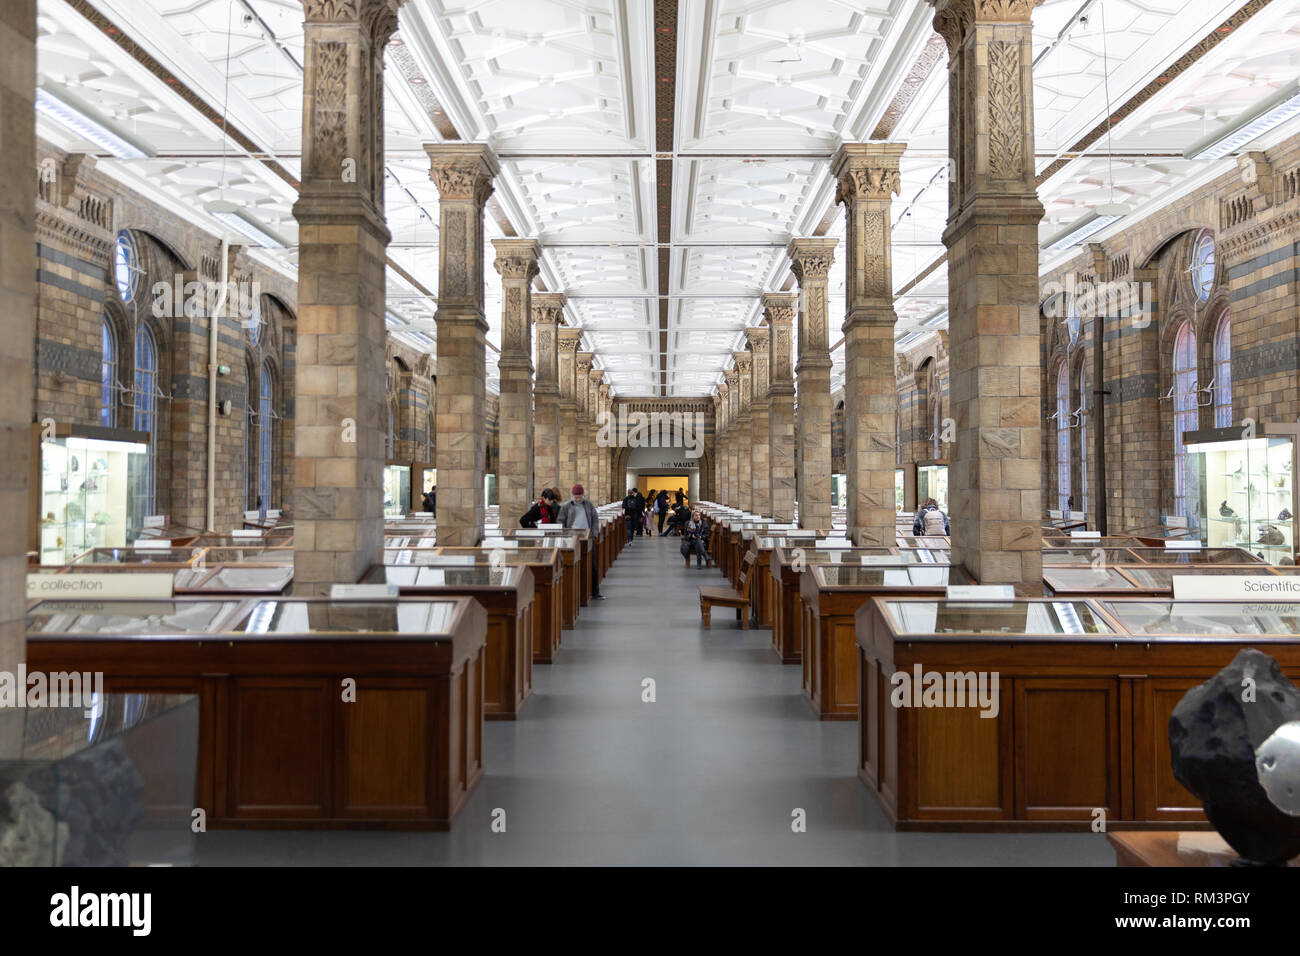 Die Mineralien Zimmer am Natural History Museum, London, UK Stockbild